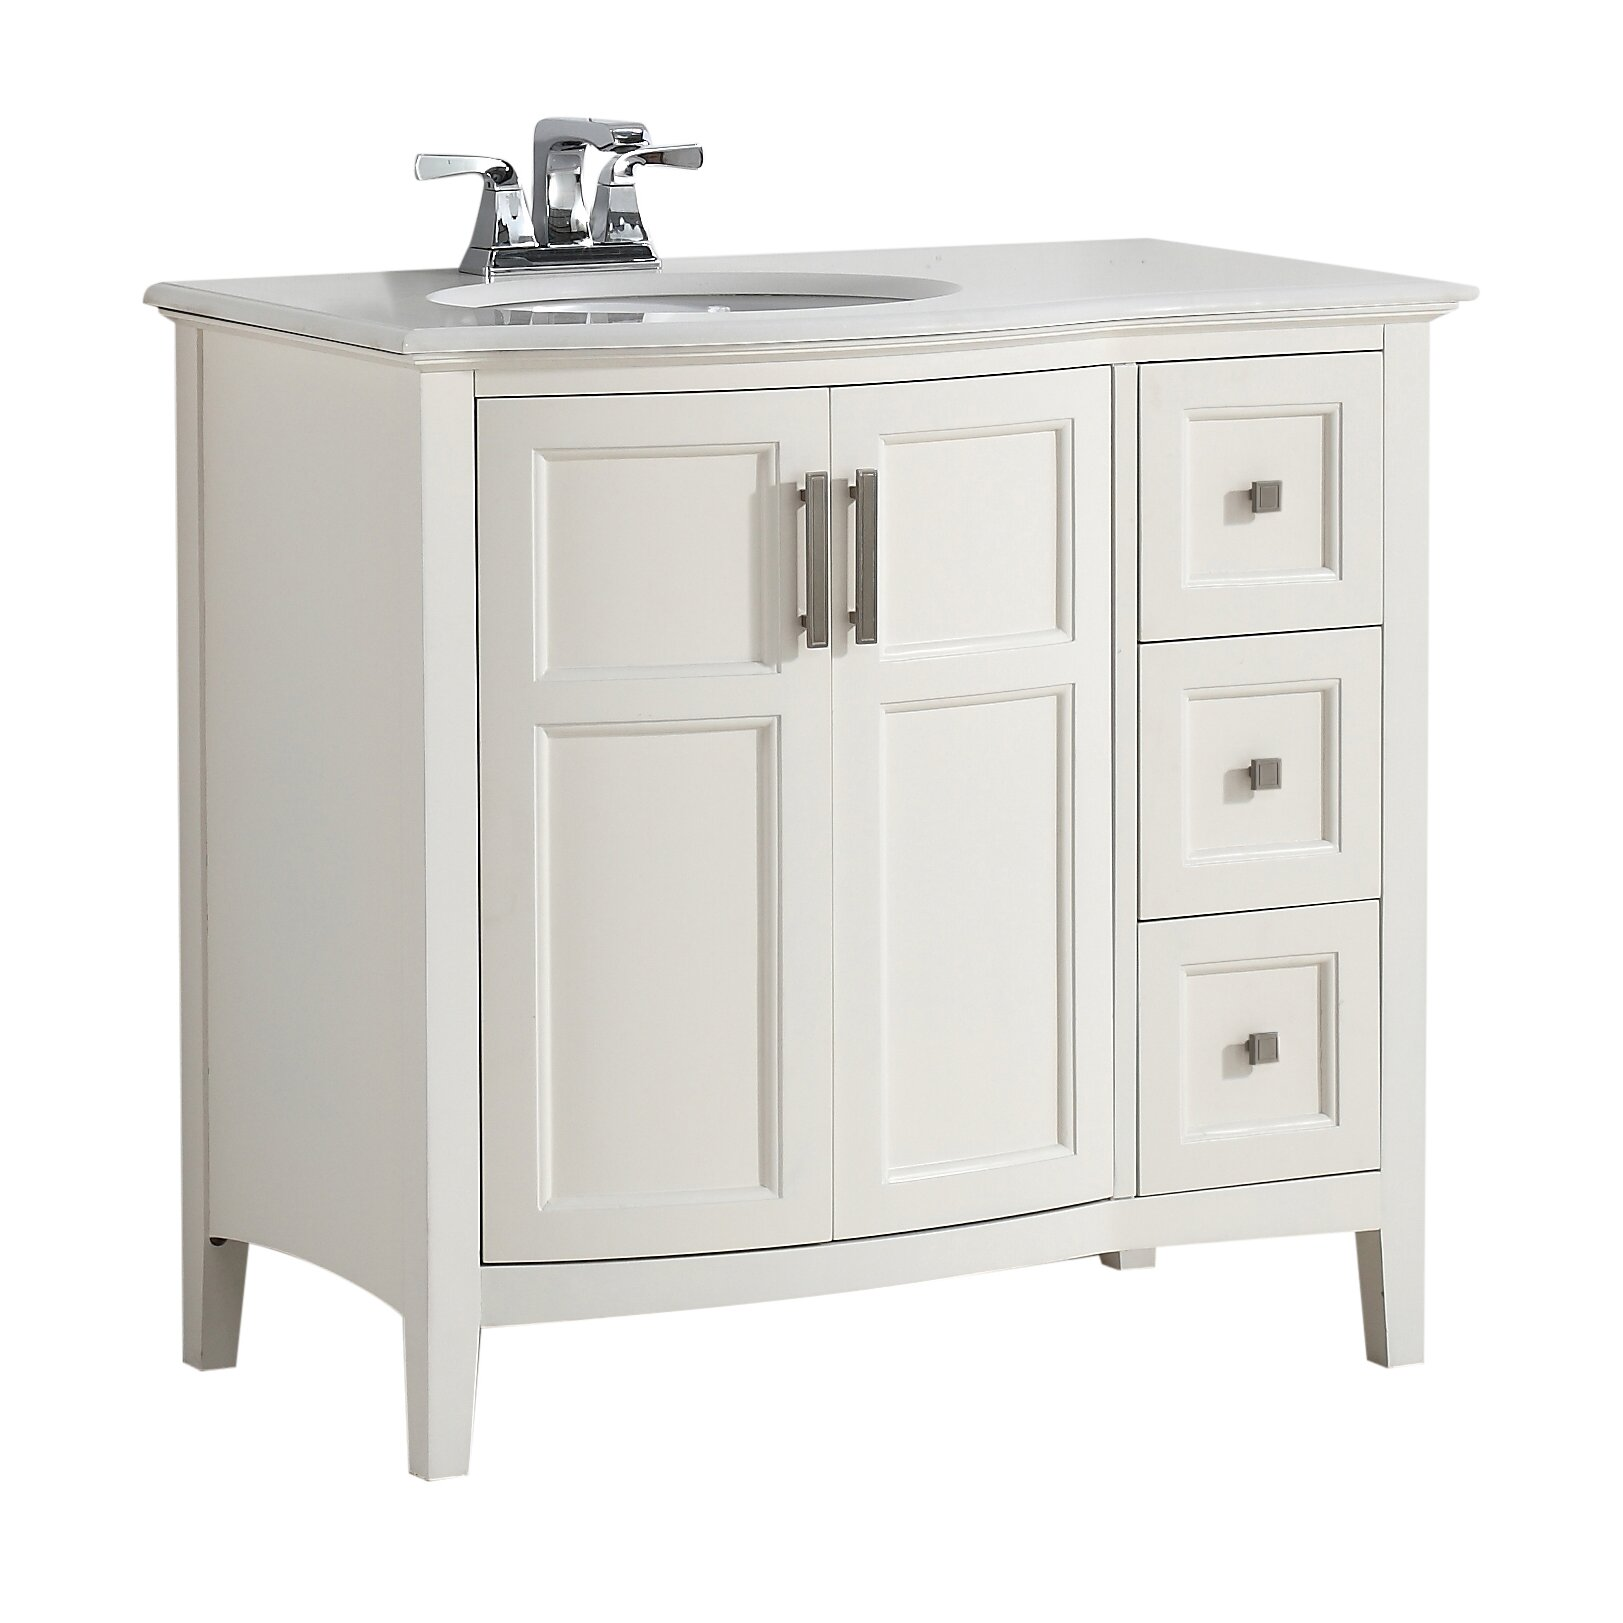 Simpli home winston 37 single rounded front bath vanity for Bath and vanity set